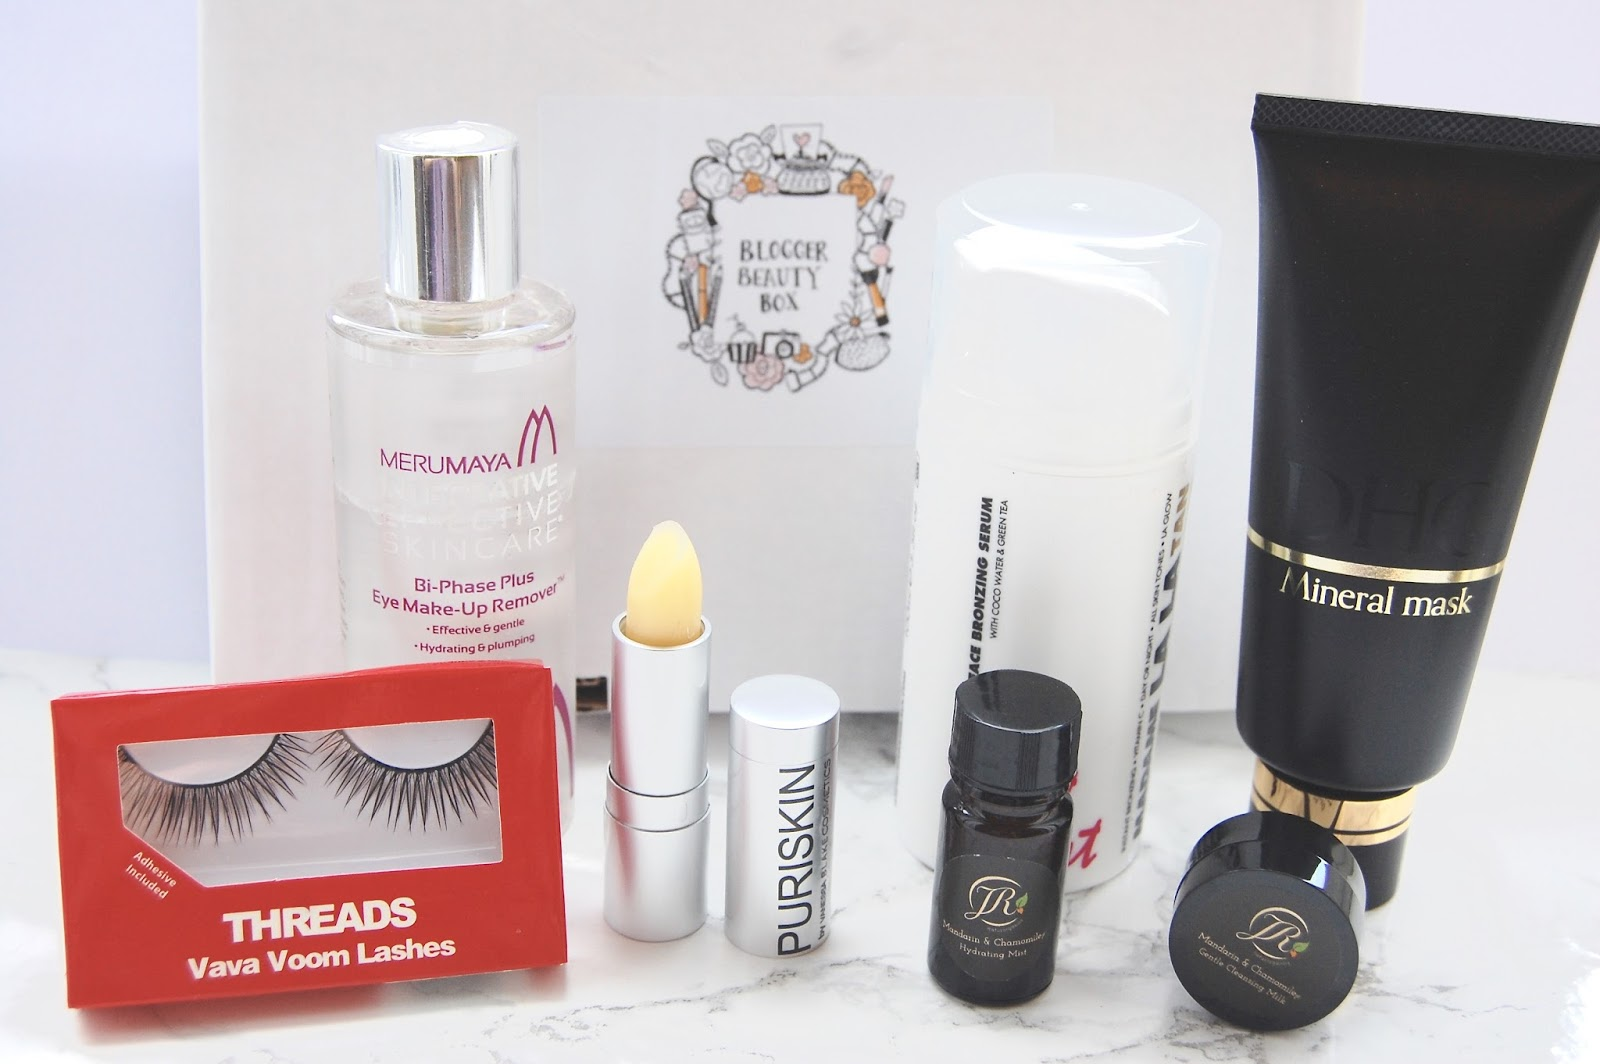 Read more about the Blogger Beauty Box here